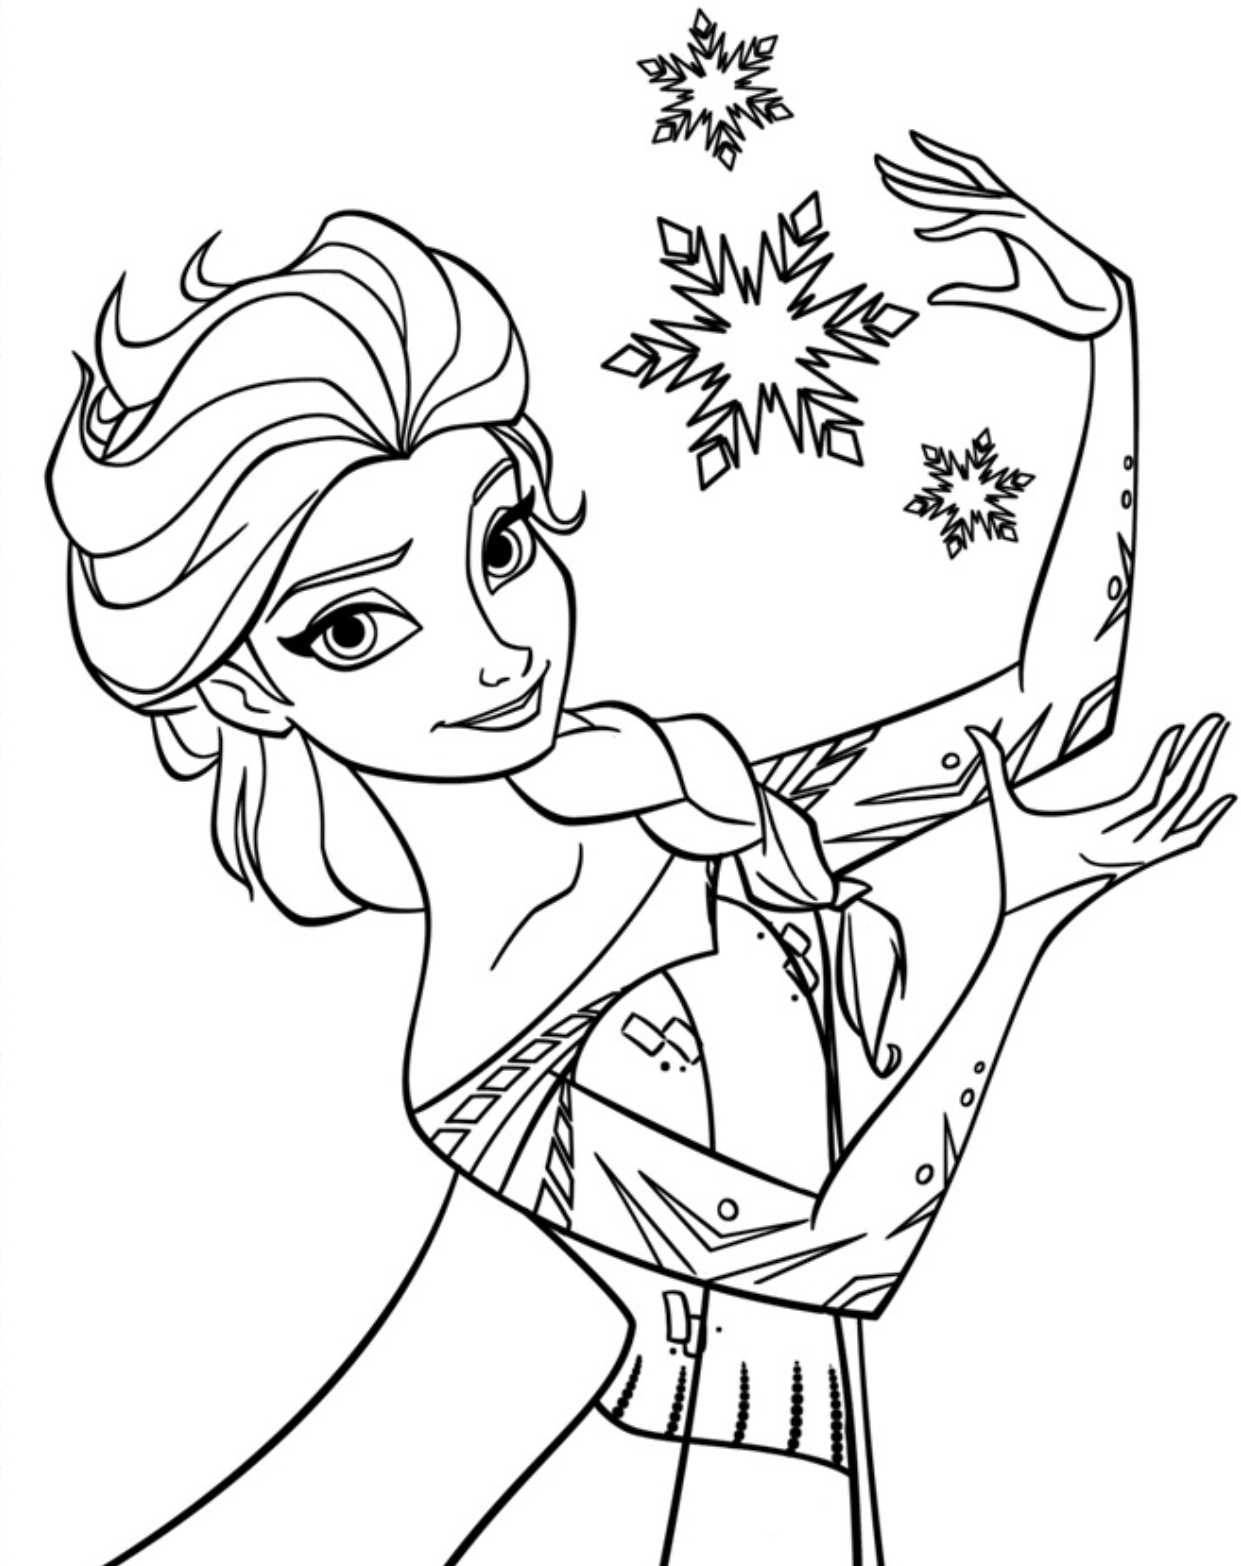 coloring picture to print free printable tangled coloring pages for kids cool2bkids to coloring print picture